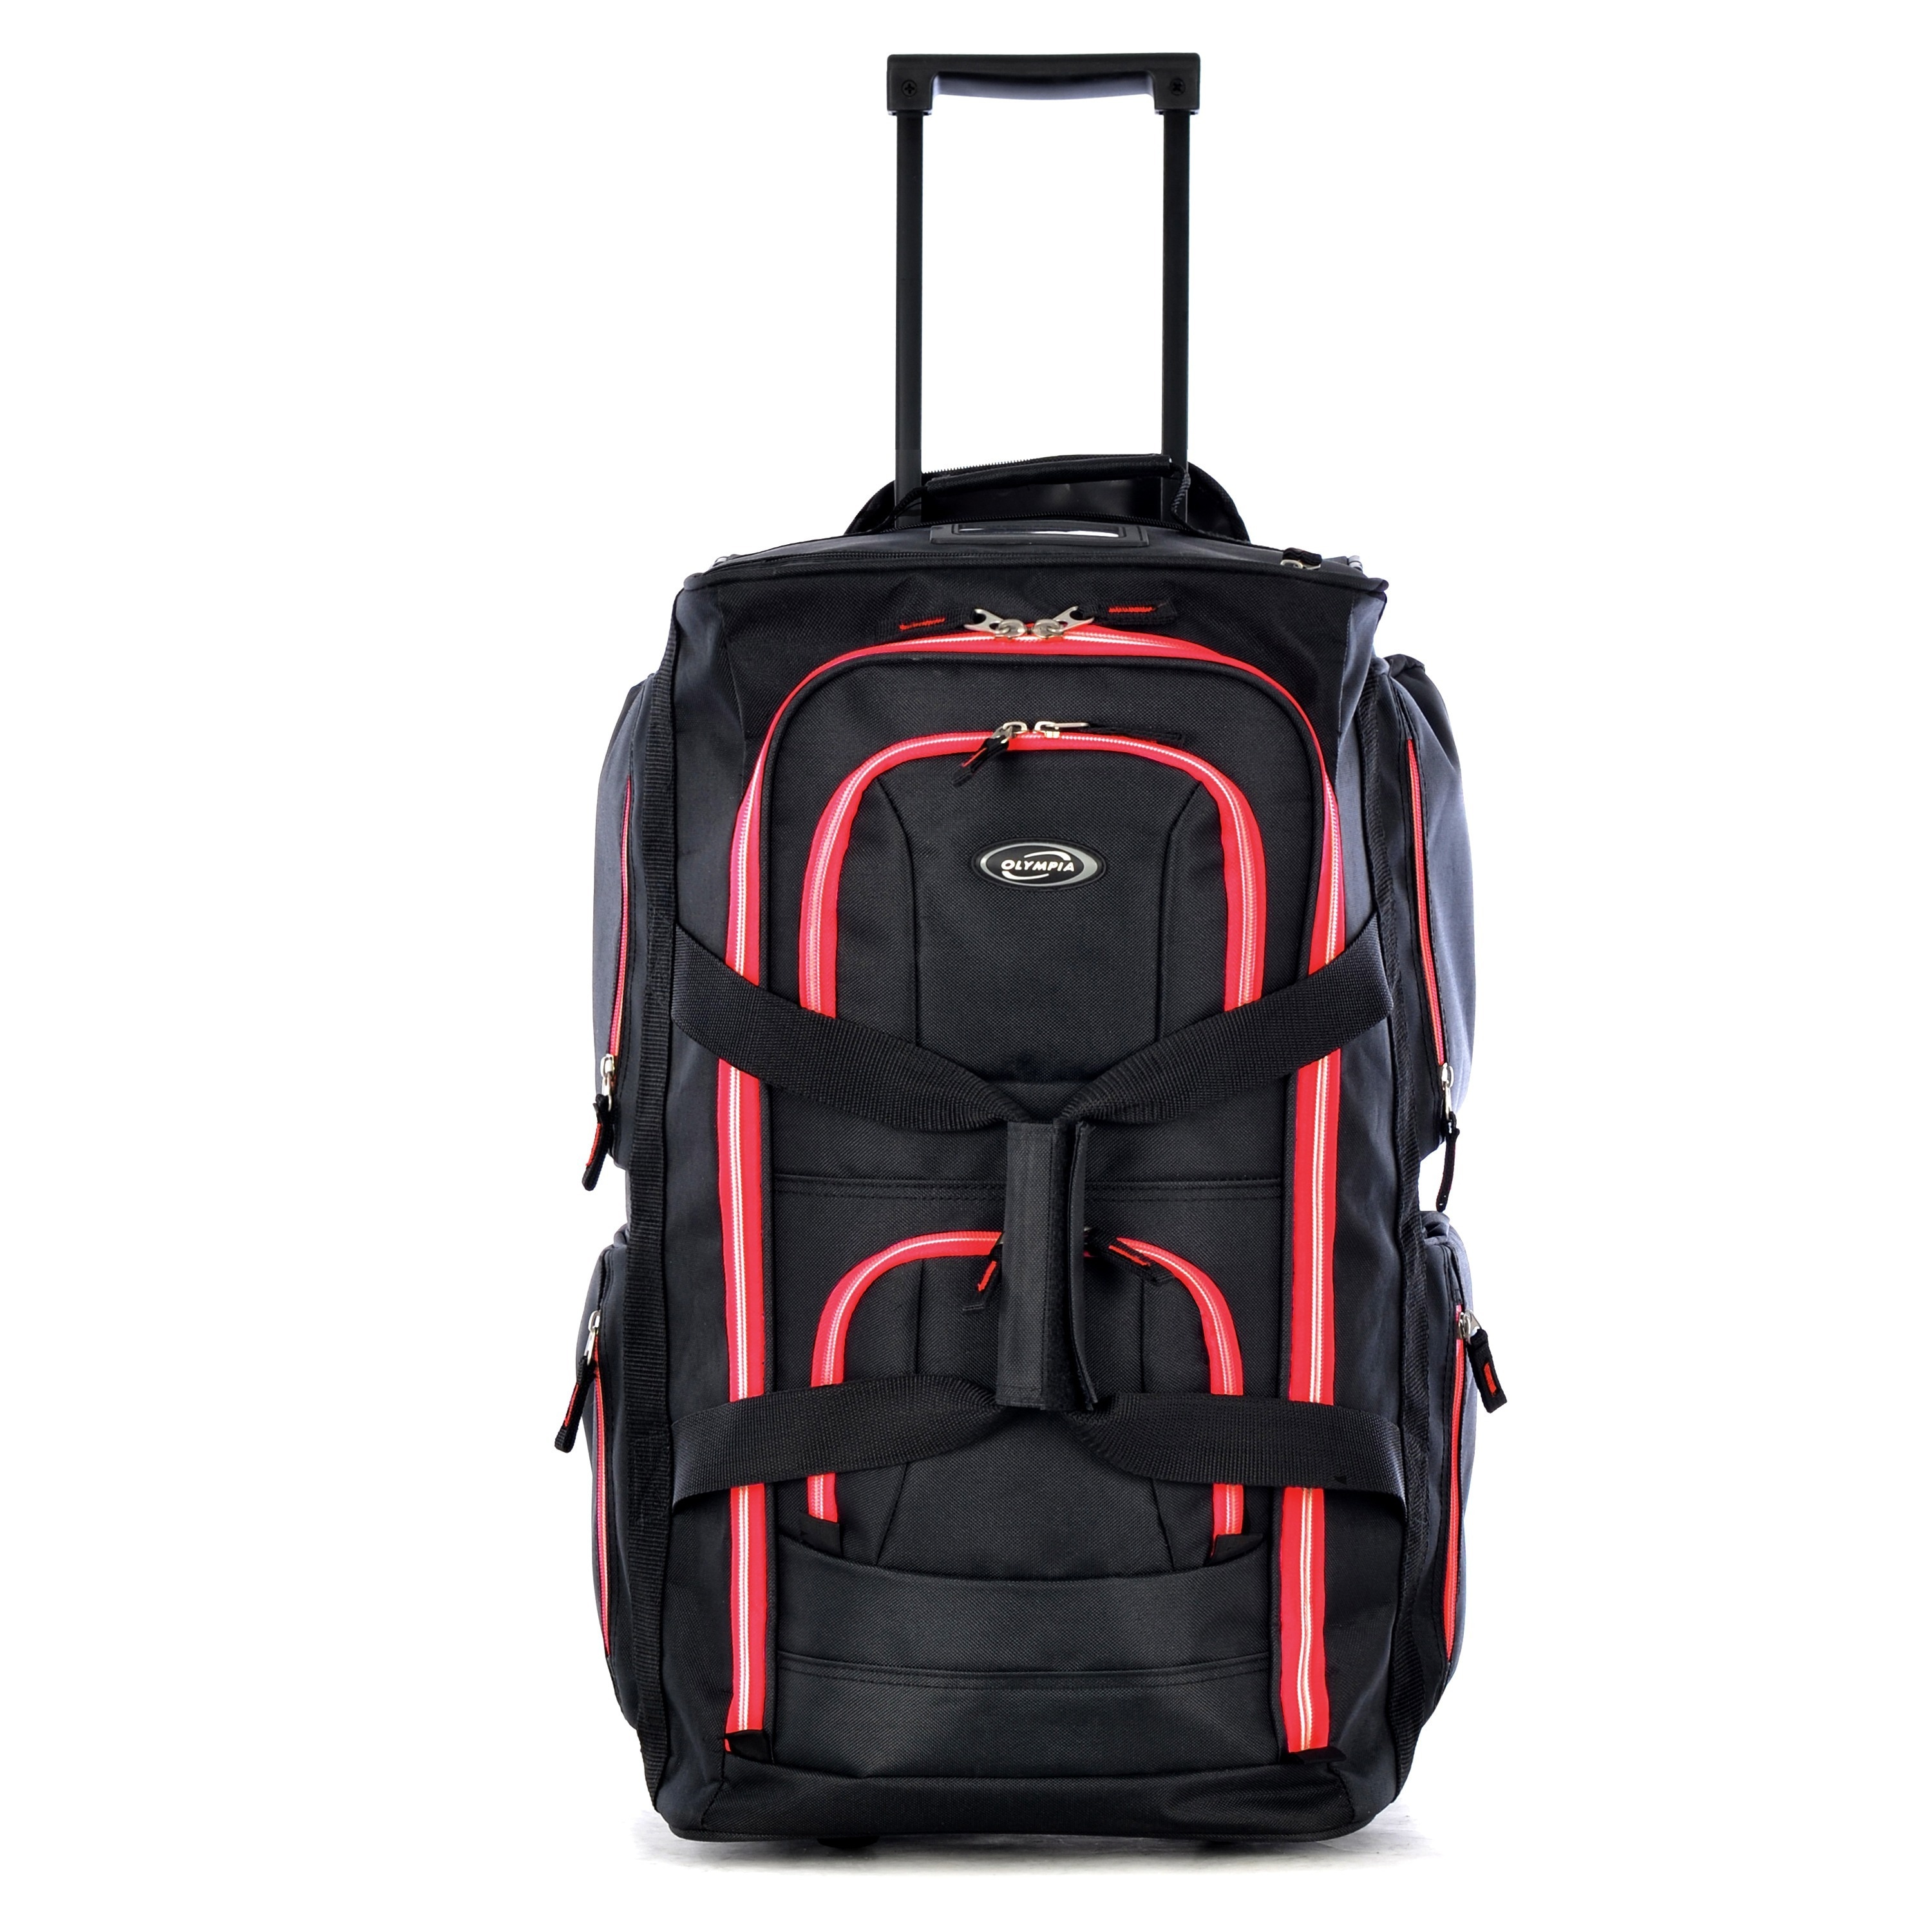 c936c41ce2 Shop Olympia 22-inch Carry-on 8-pocket Rolling Upright Duffel Bag - Free  Shipping On Orders Over  45 - Overstock - 8682753